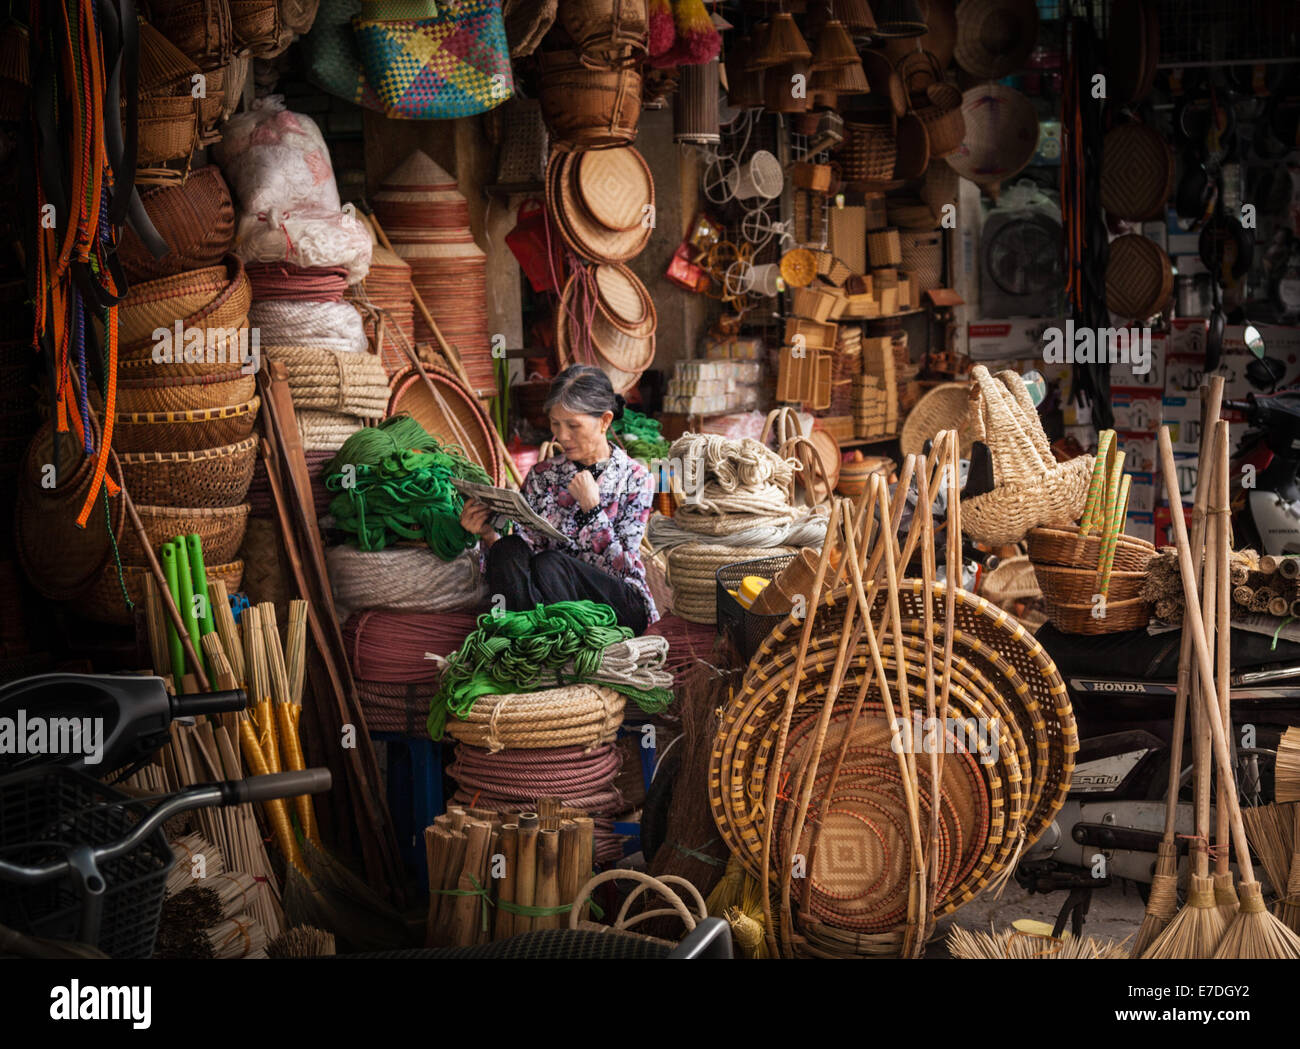 Food market in the Old Quarter of Hanoi, Vietnam - Stock Image